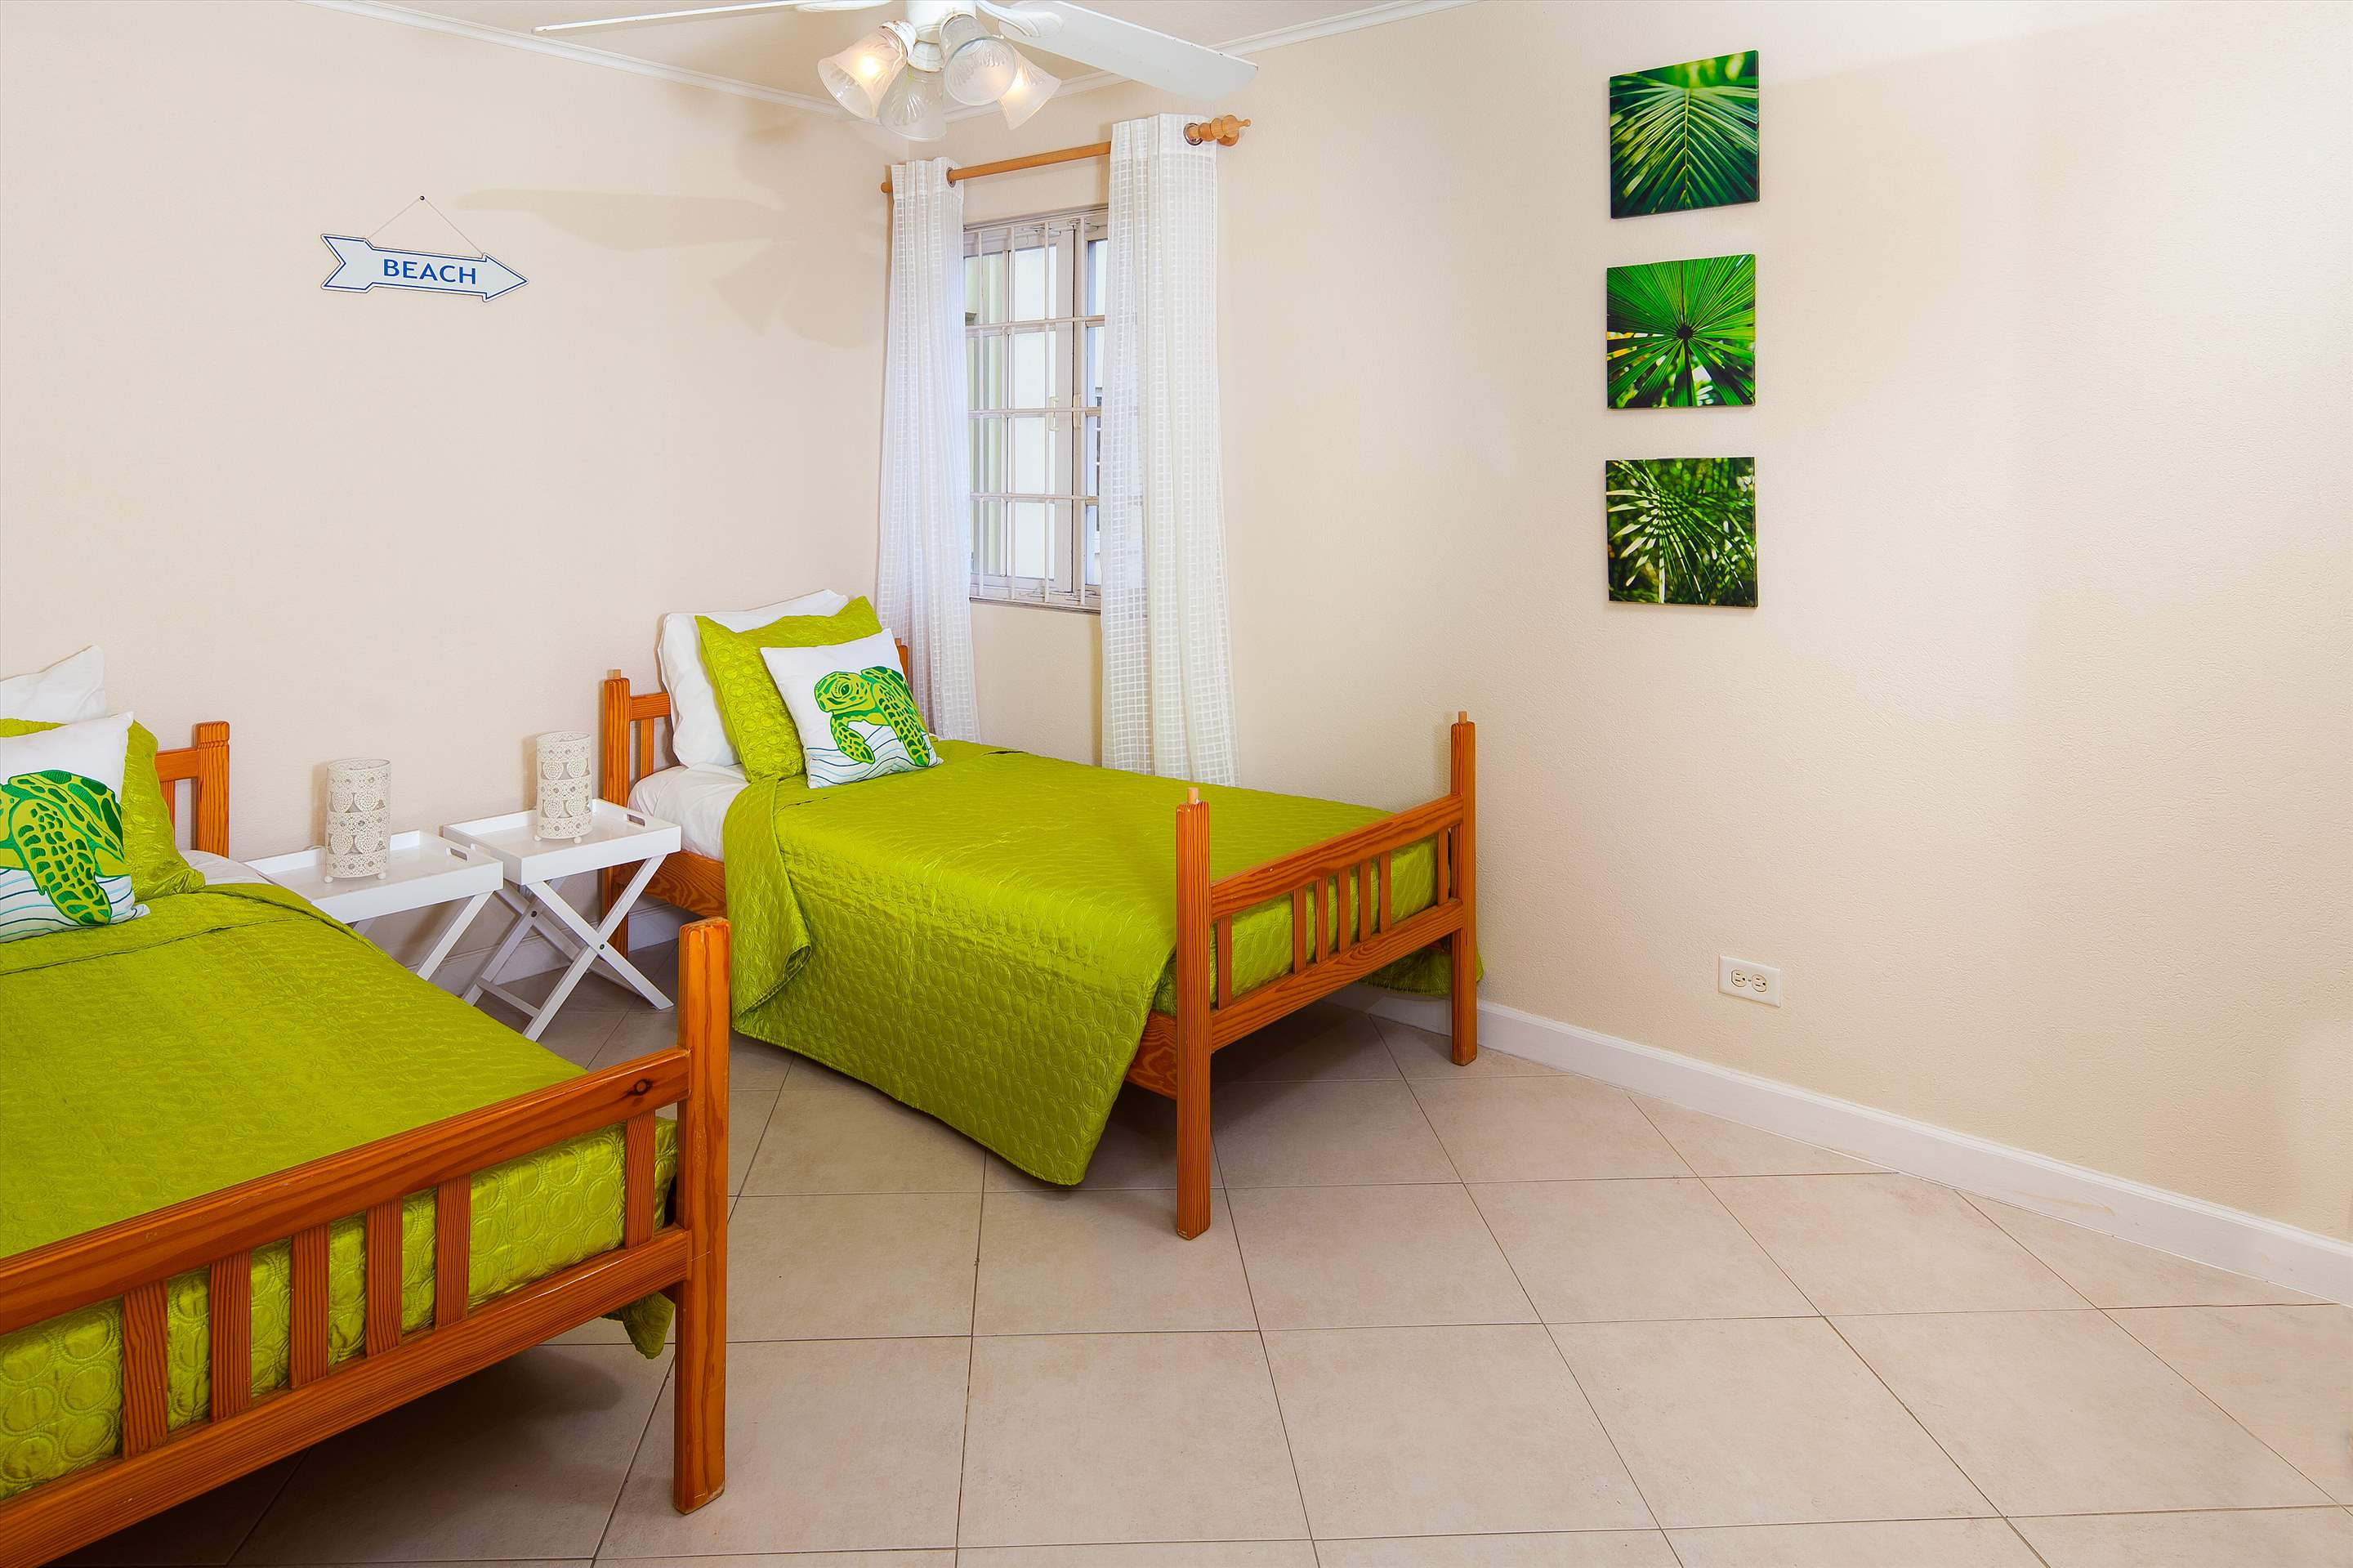 Margate Gardens 4, 3 bedroom, 3 bedroom apartment in St. Lawrence Gap & South Coast, Barbados Photo #10